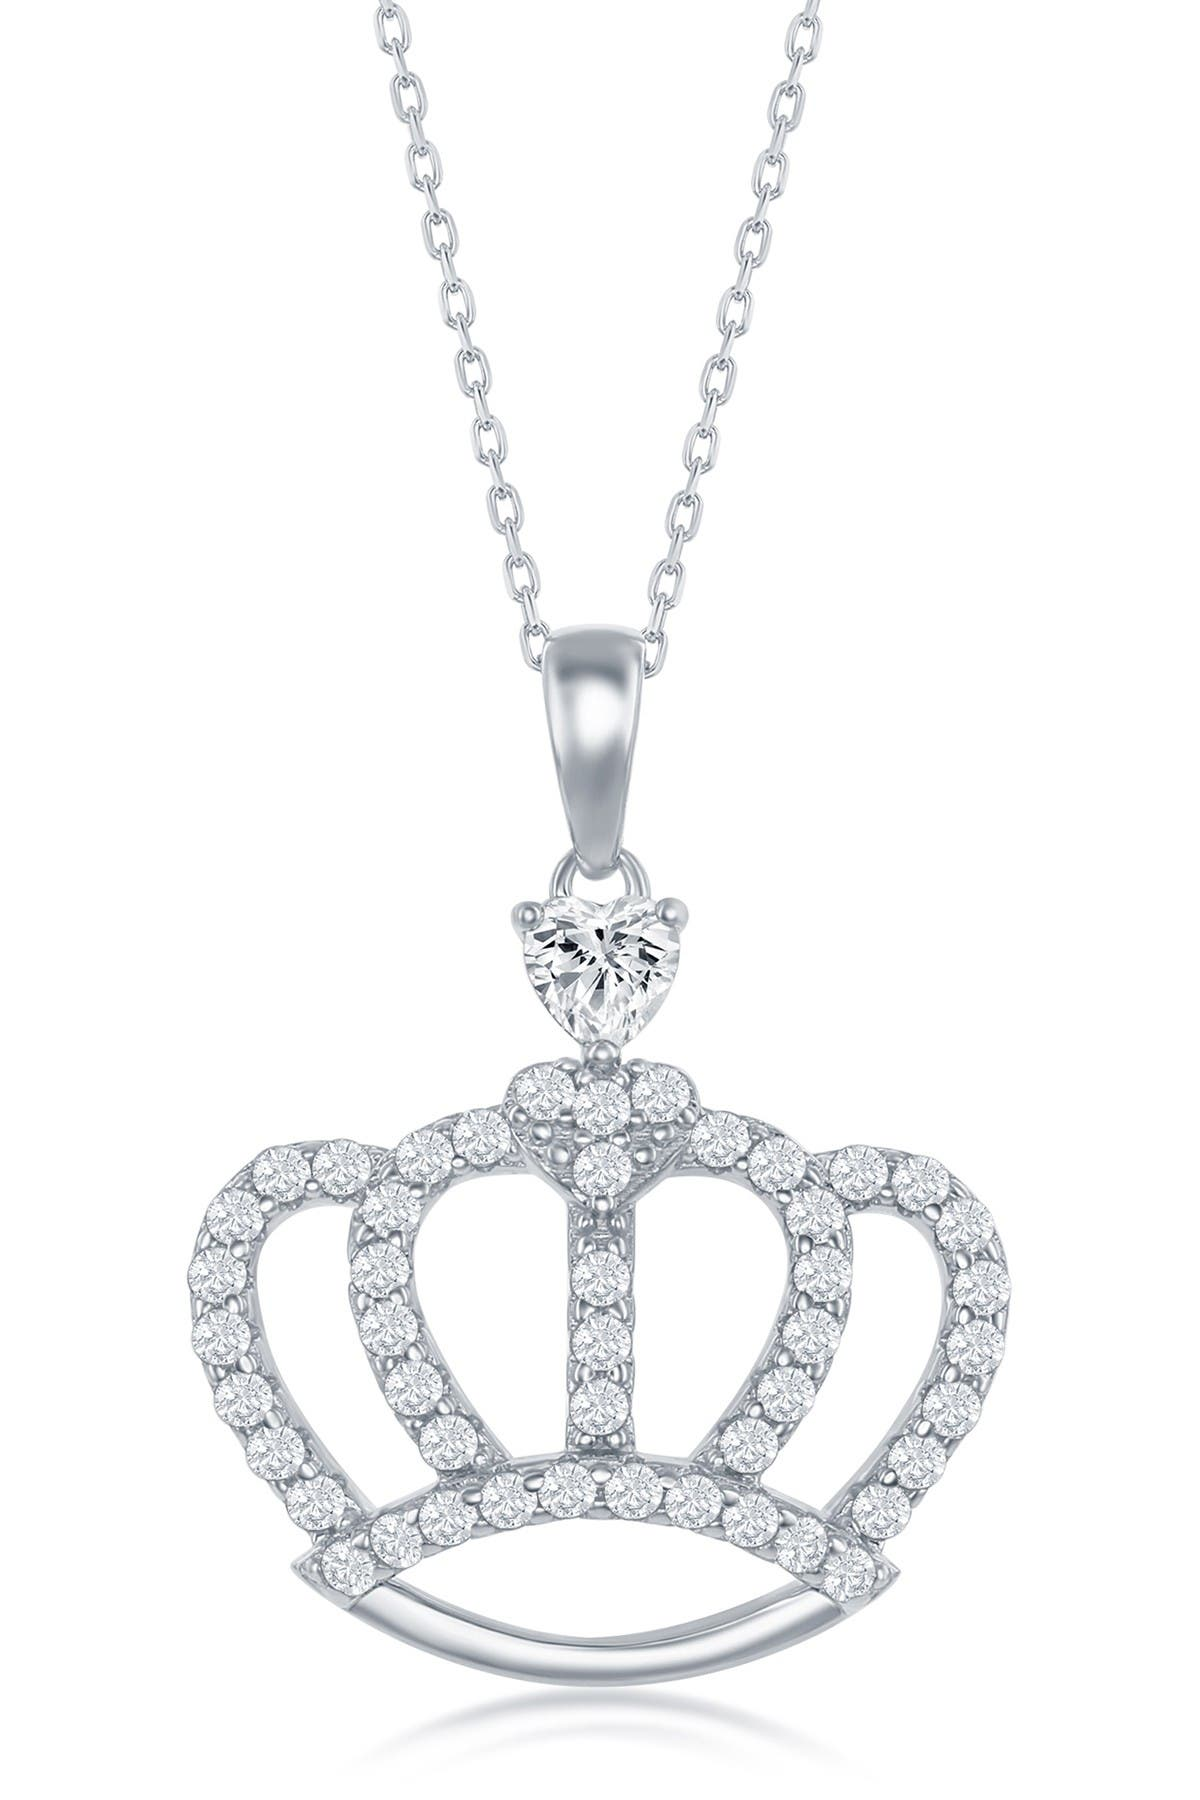 Pave CZ Crown Sterling Silver Jewelry Set of 4-Cz Crown Necklace-Cz Crown Earrings-Crown Ring-Crown Bracelet-Lovely Holiday Gift Jewelry